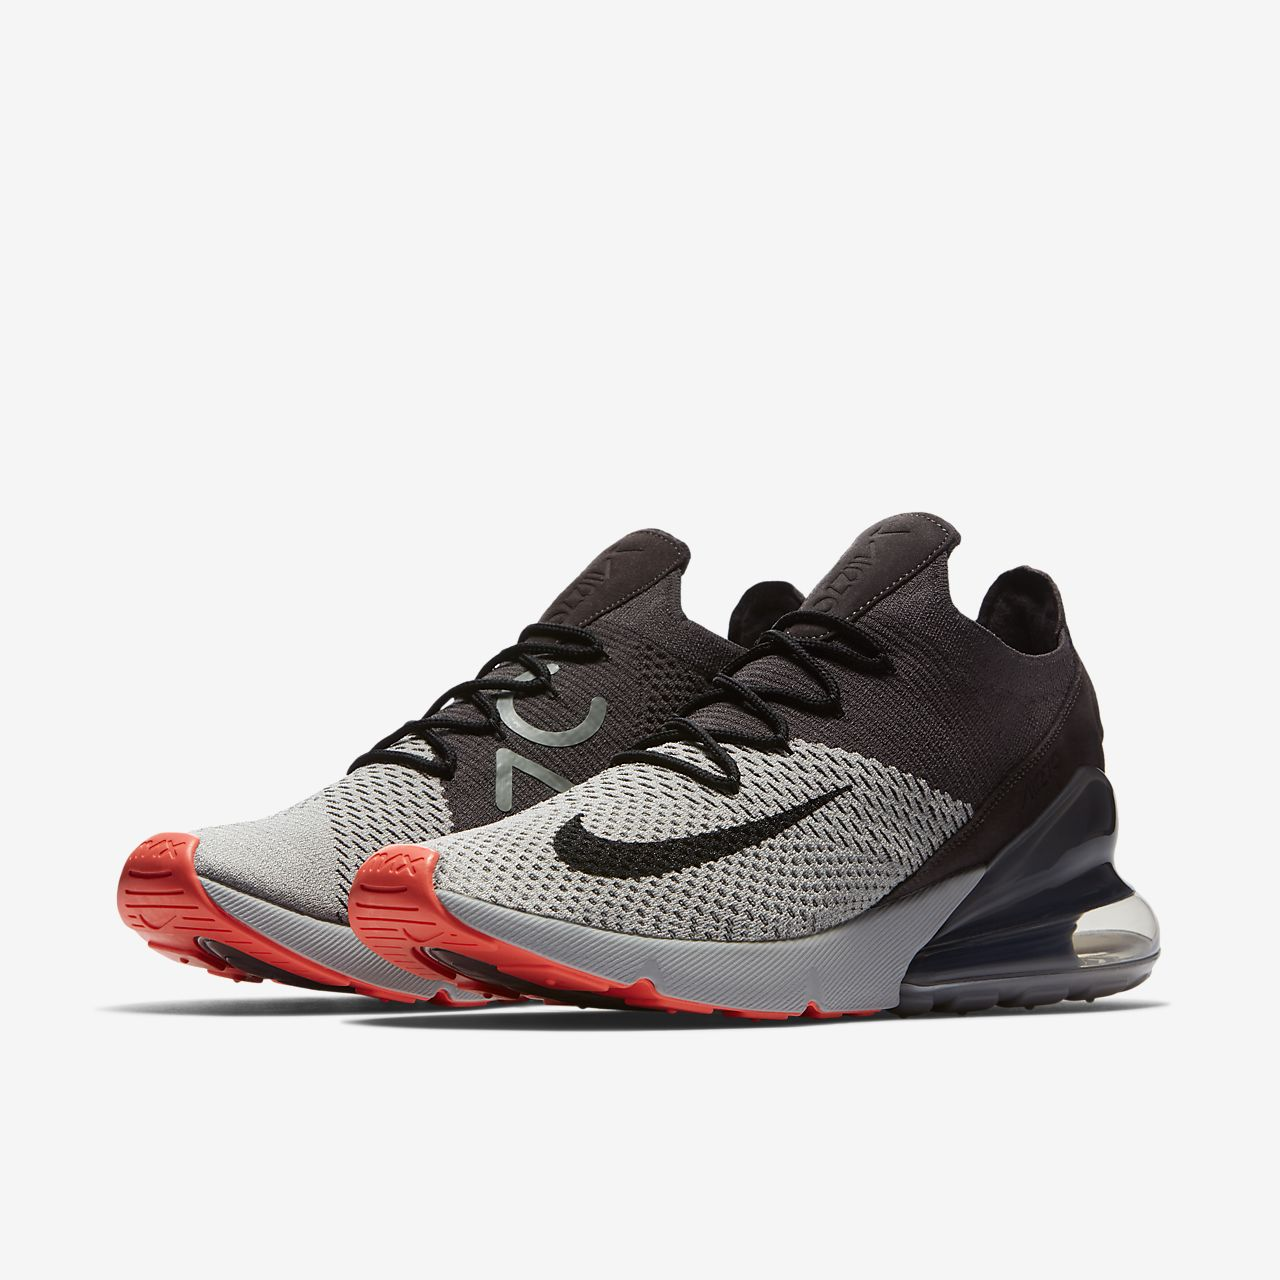 8d6eb18ffb4 Chaussure Nike Air Max 270 Flyknit pour Homme. Nike.com FR